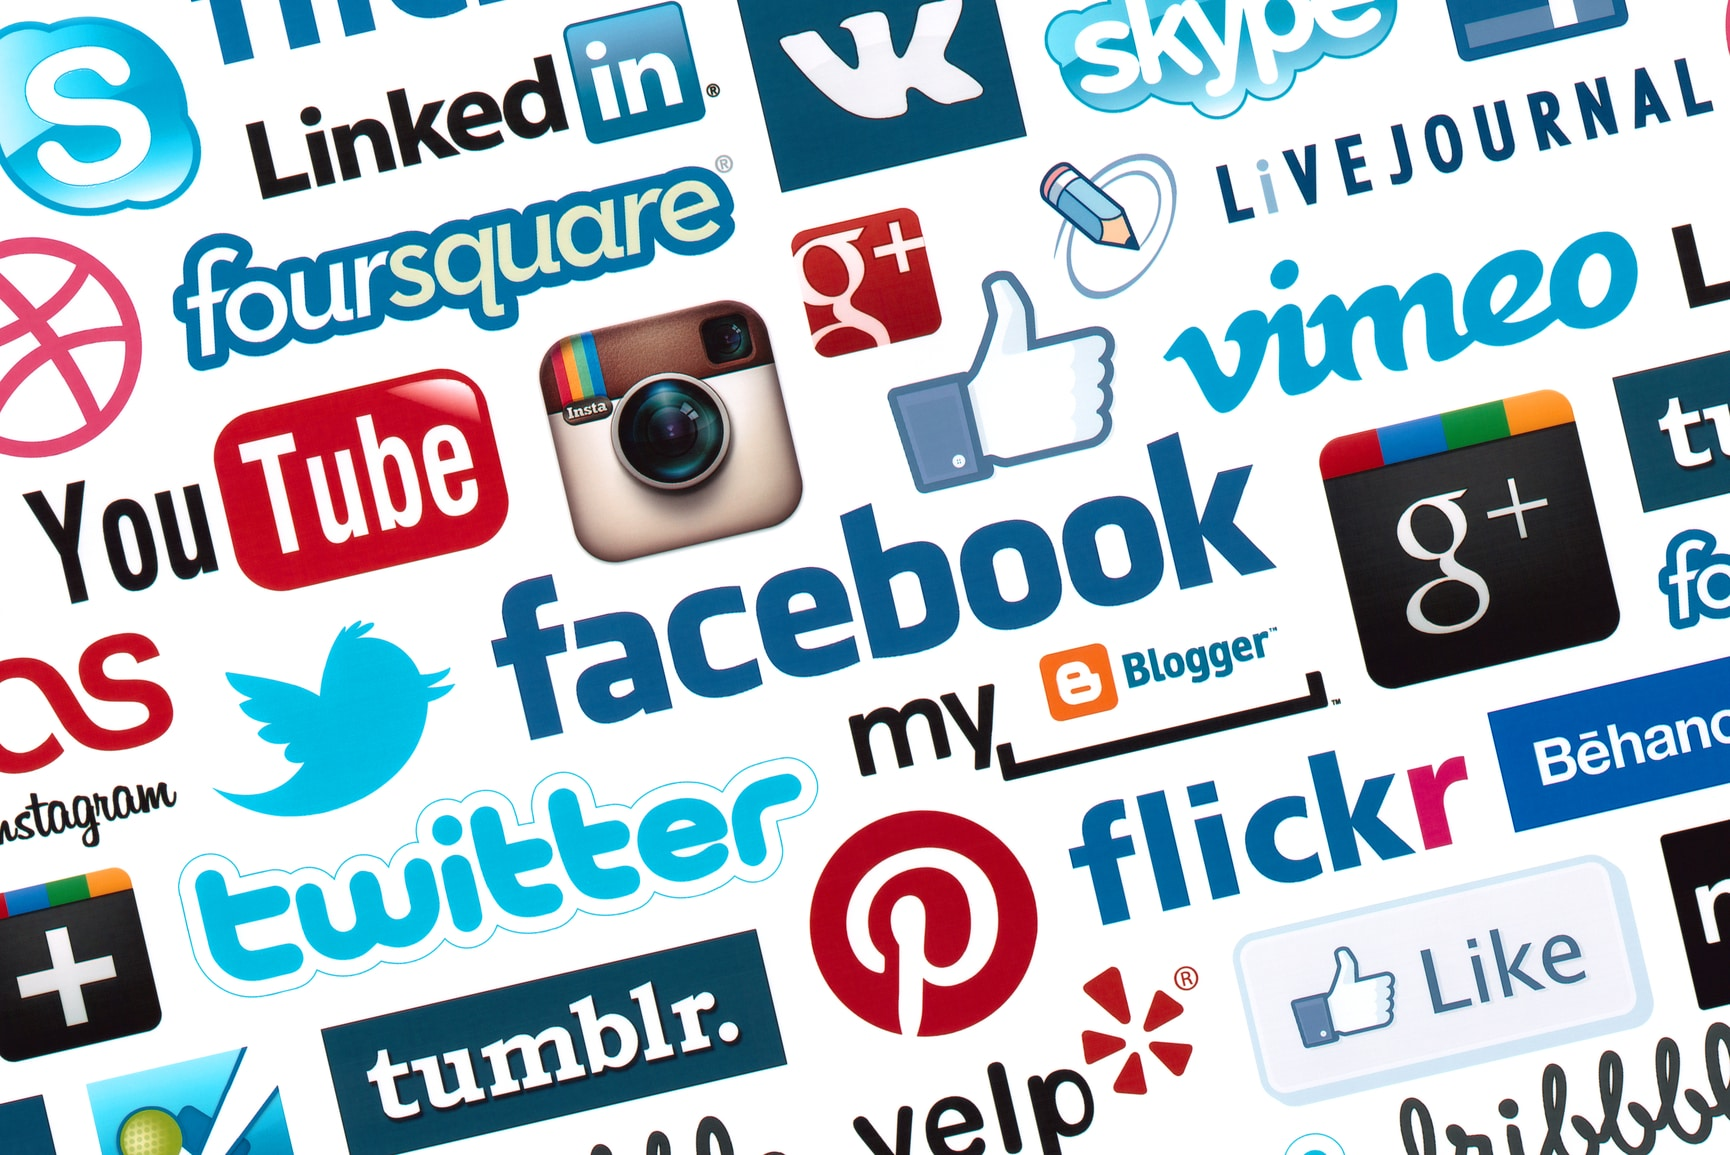 social media How Private Is Your Data On Social Media Apps?